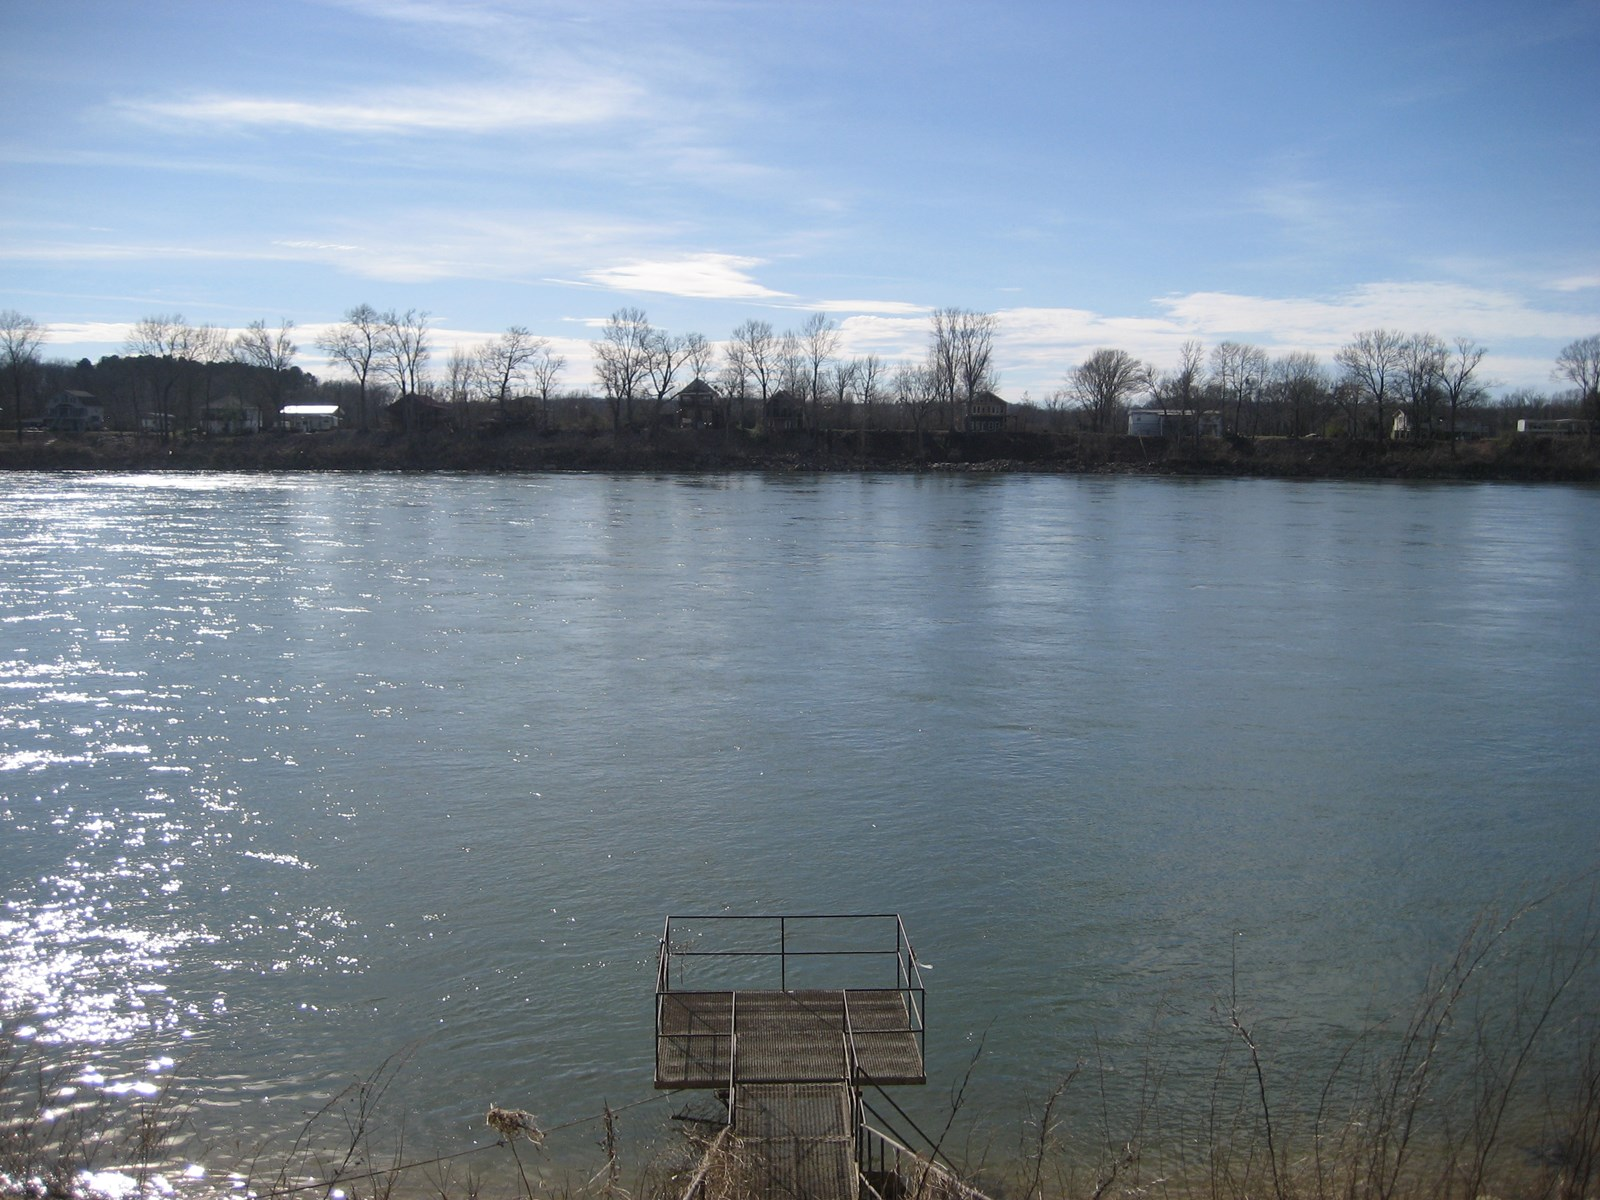 WATERFRONT LAND ON THE TN RIVER – RIVER LOT WITH UTILITIES